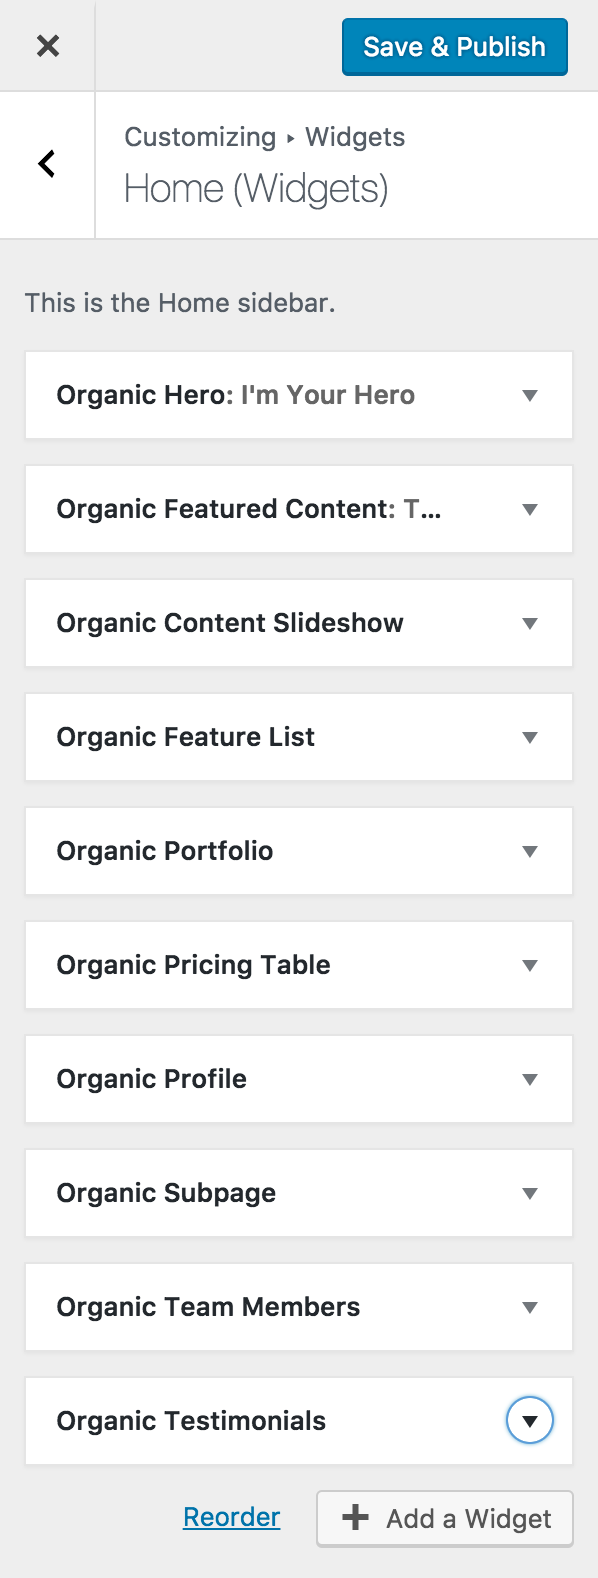 A list of some of the custom widgets included as seen within the customizer.